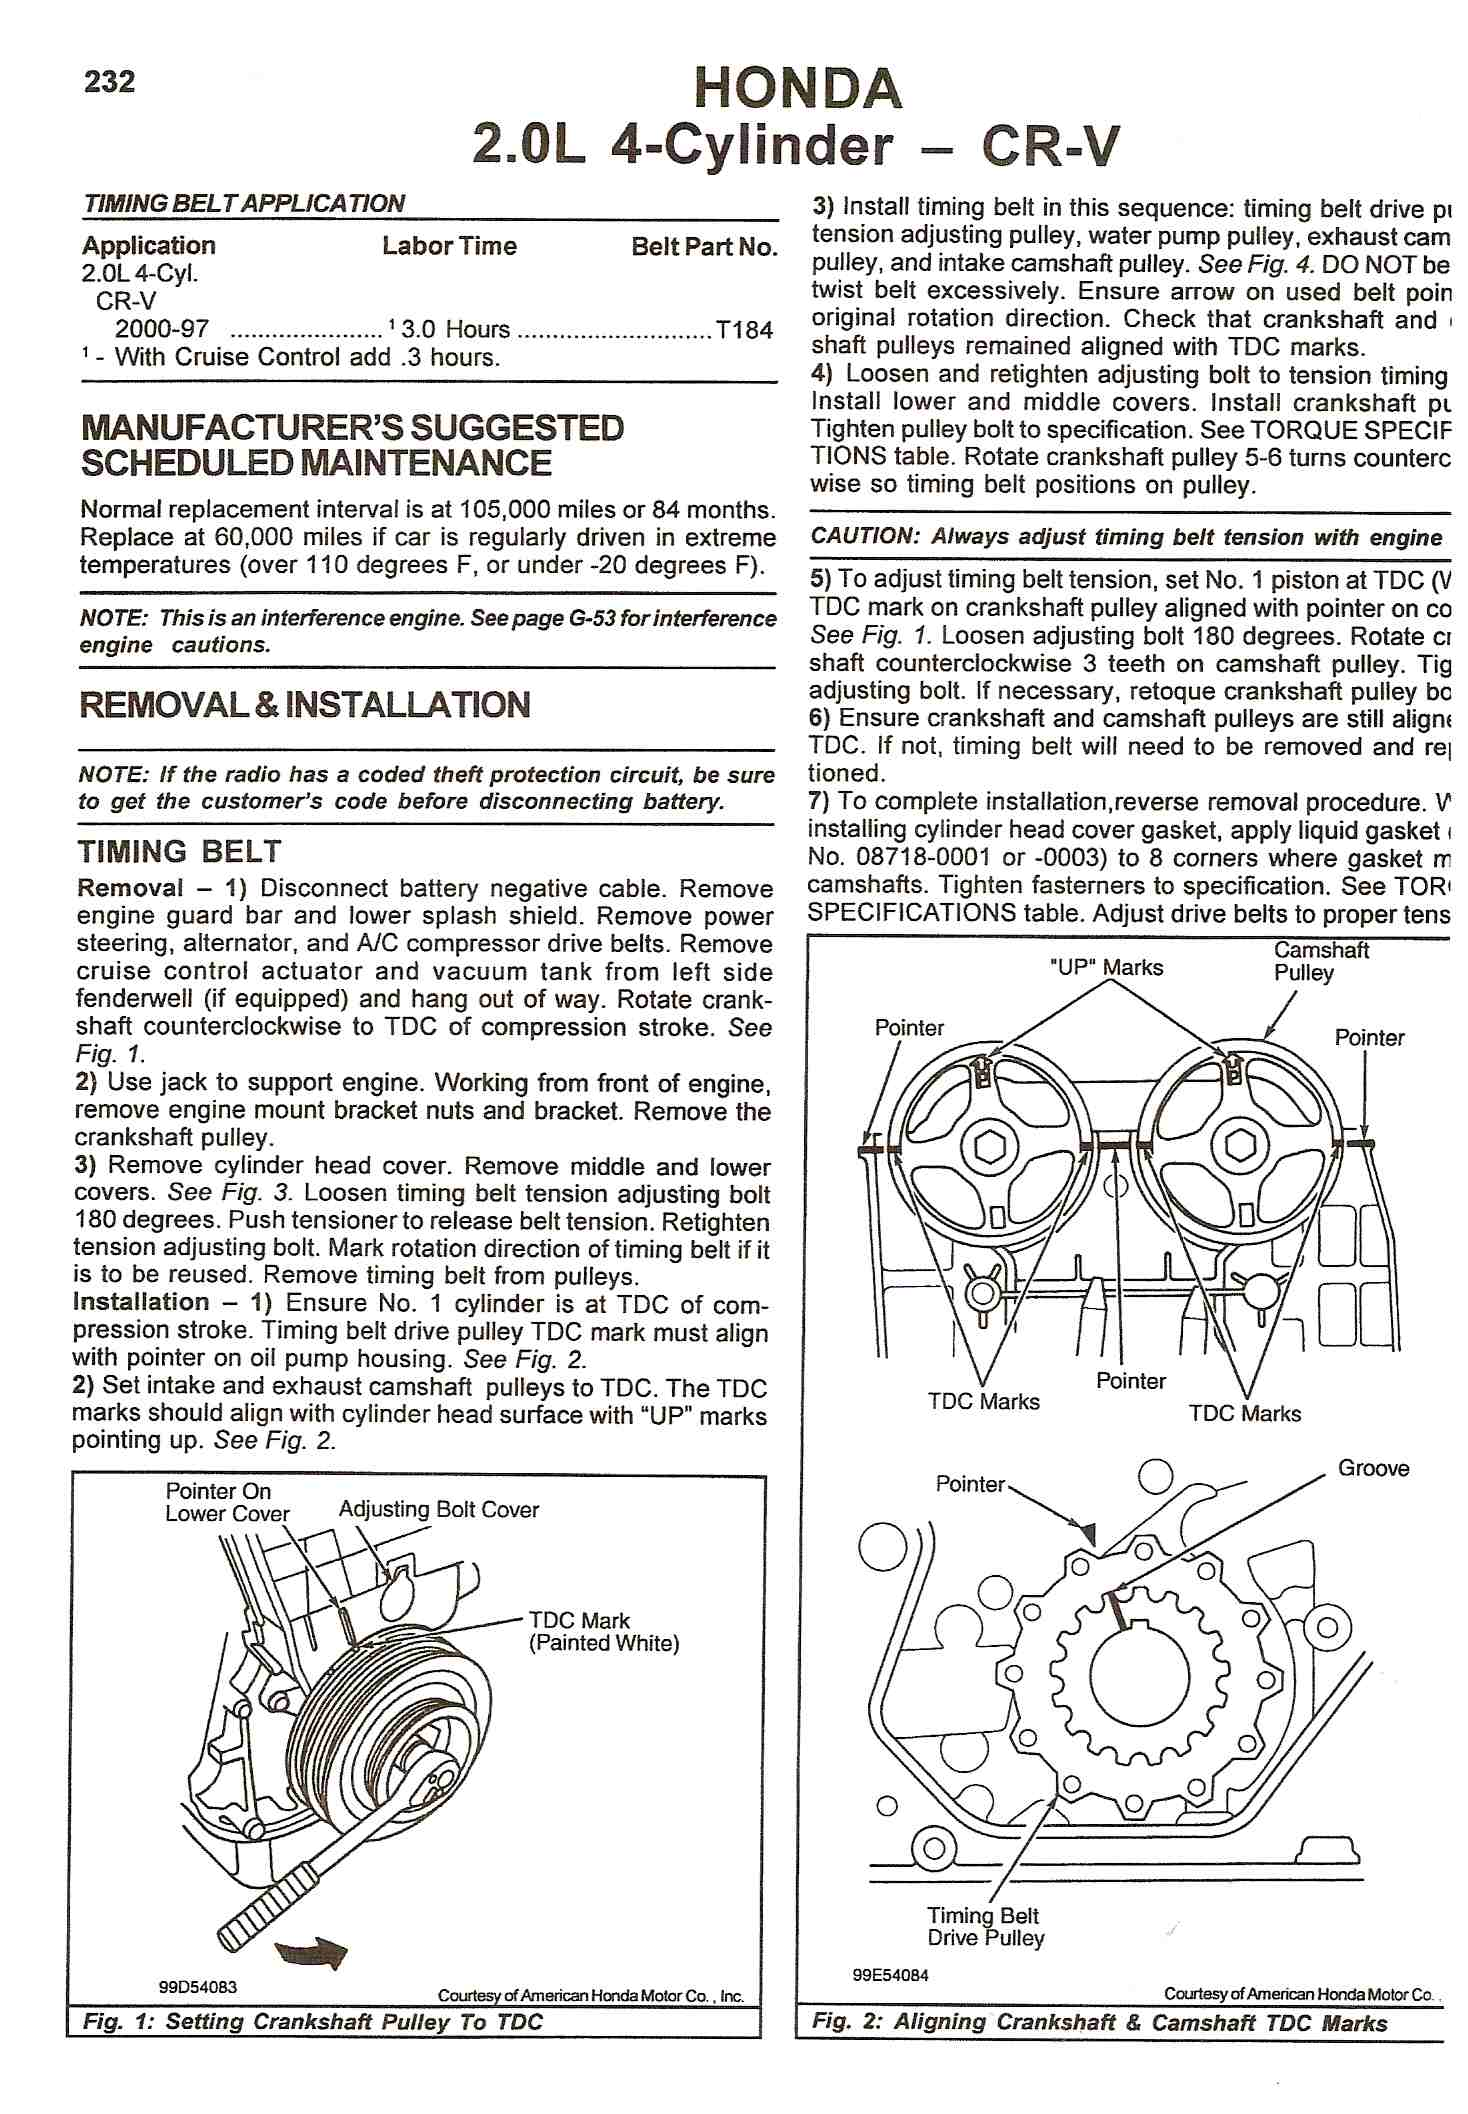 97 Honda Crv Engine Diagram